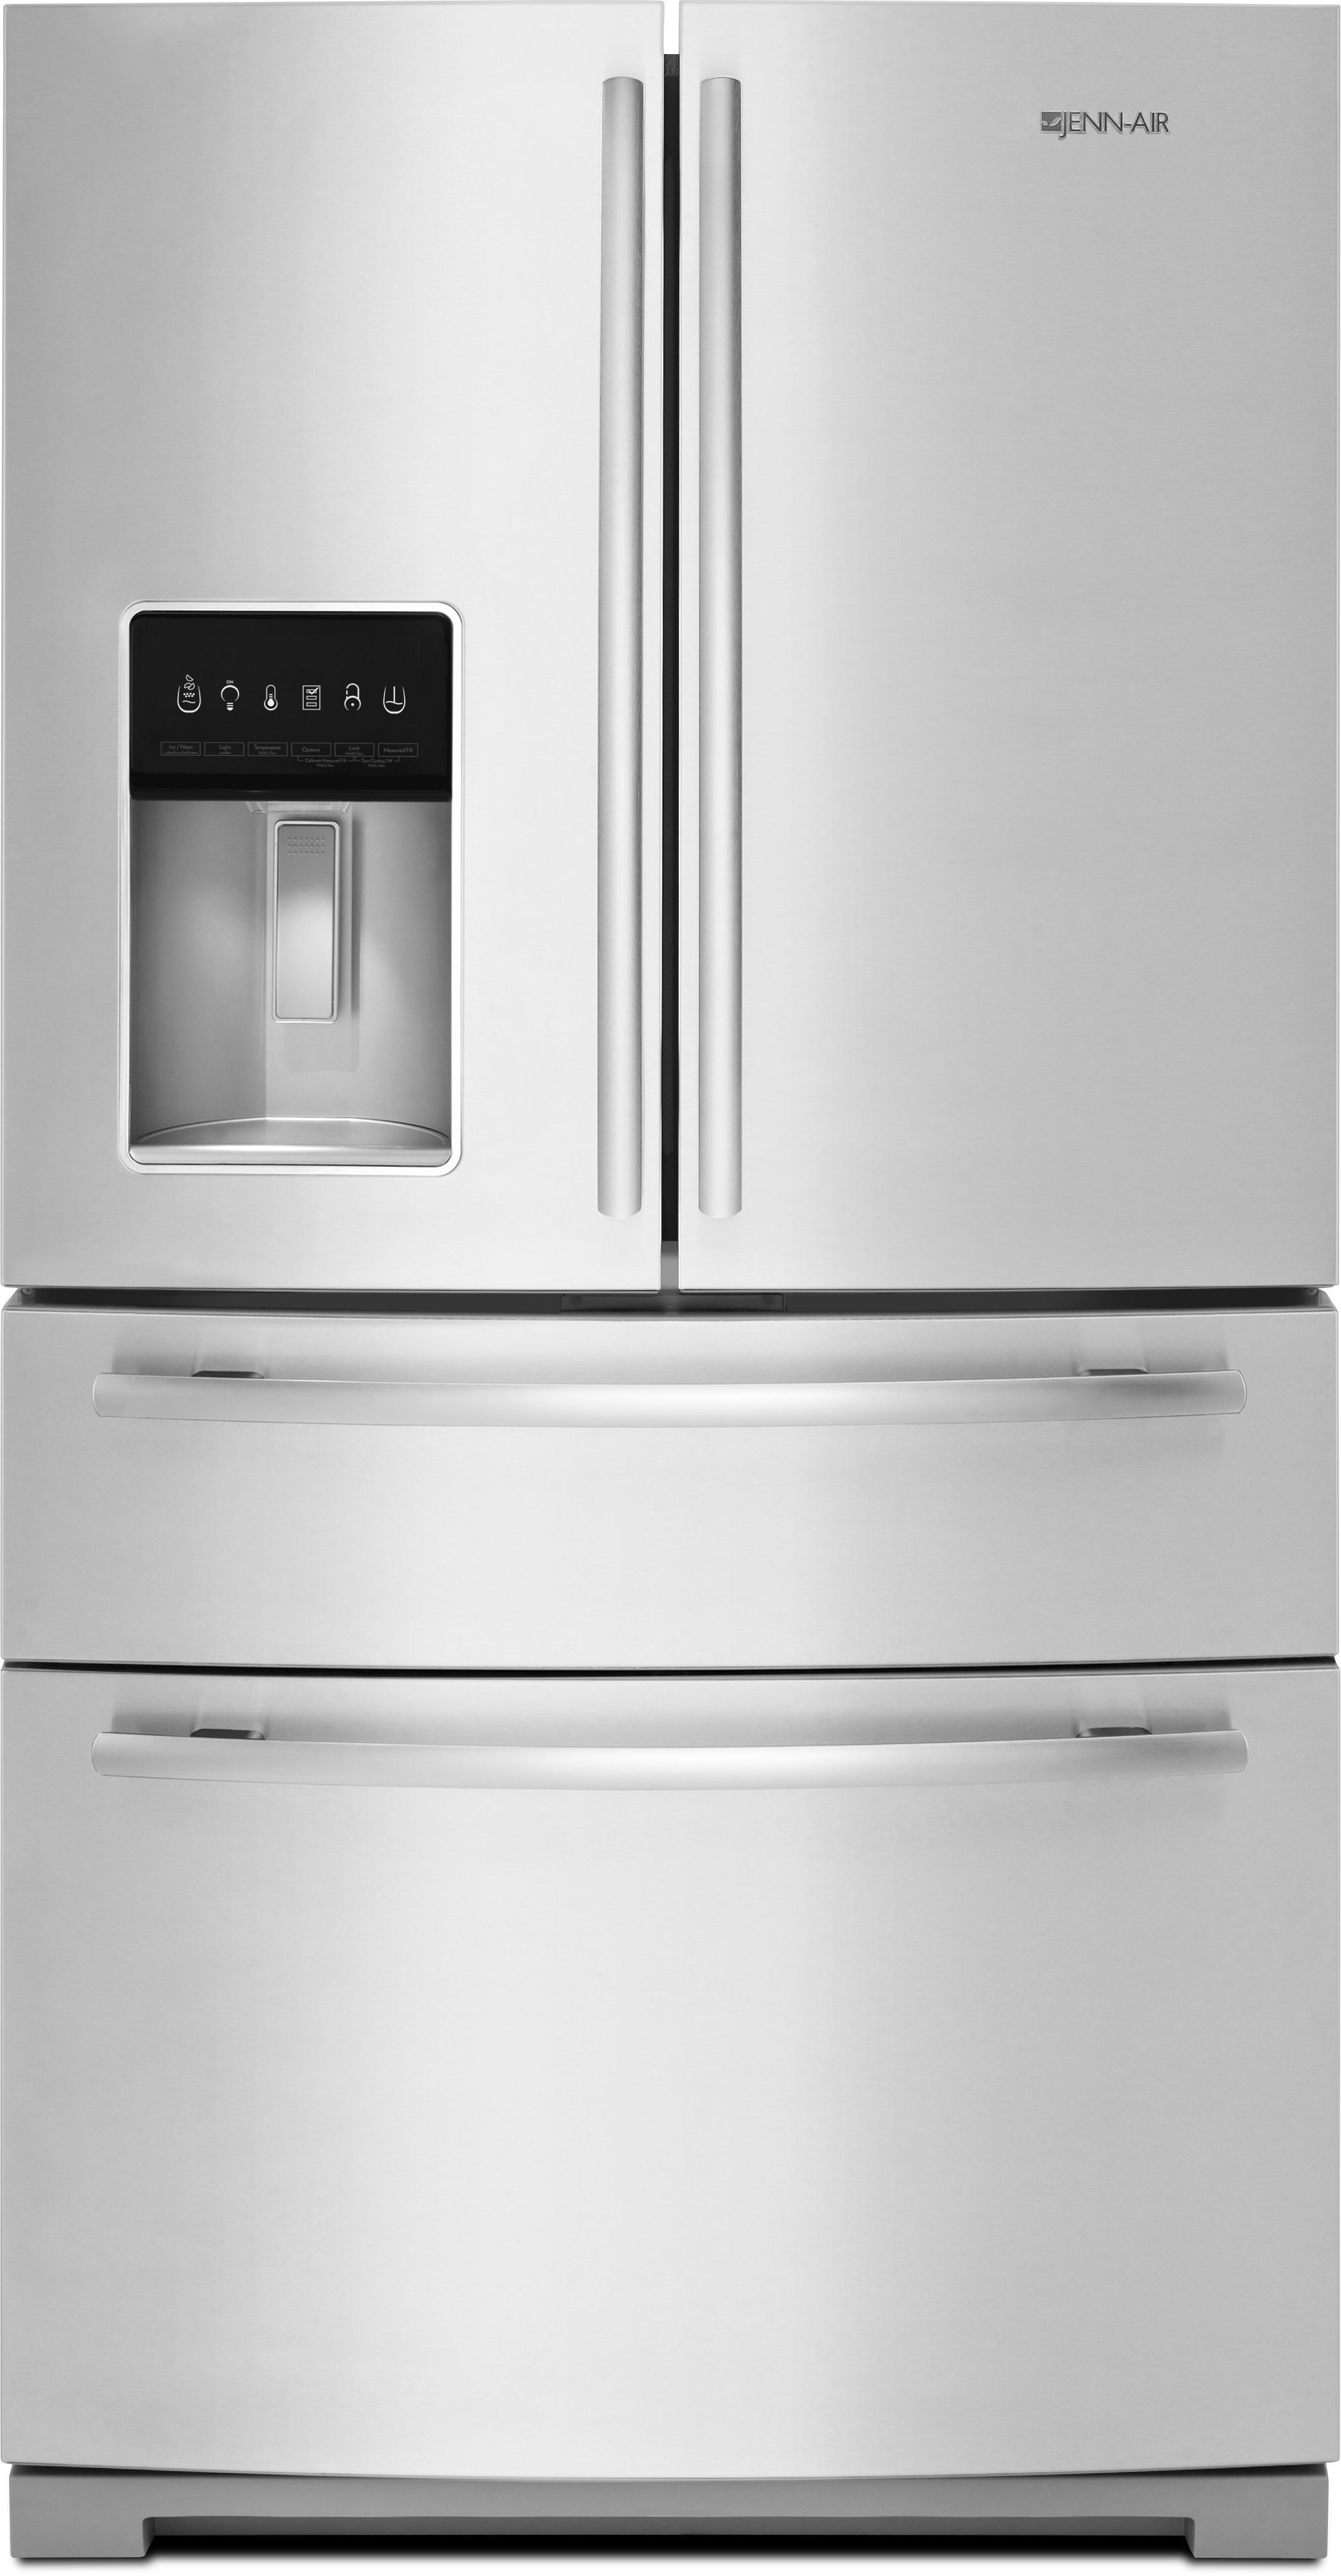 Jenn Air® 26.2 Cu. Ft. French Door Refrigerator Stainless Steel JFX2897DRM  ...